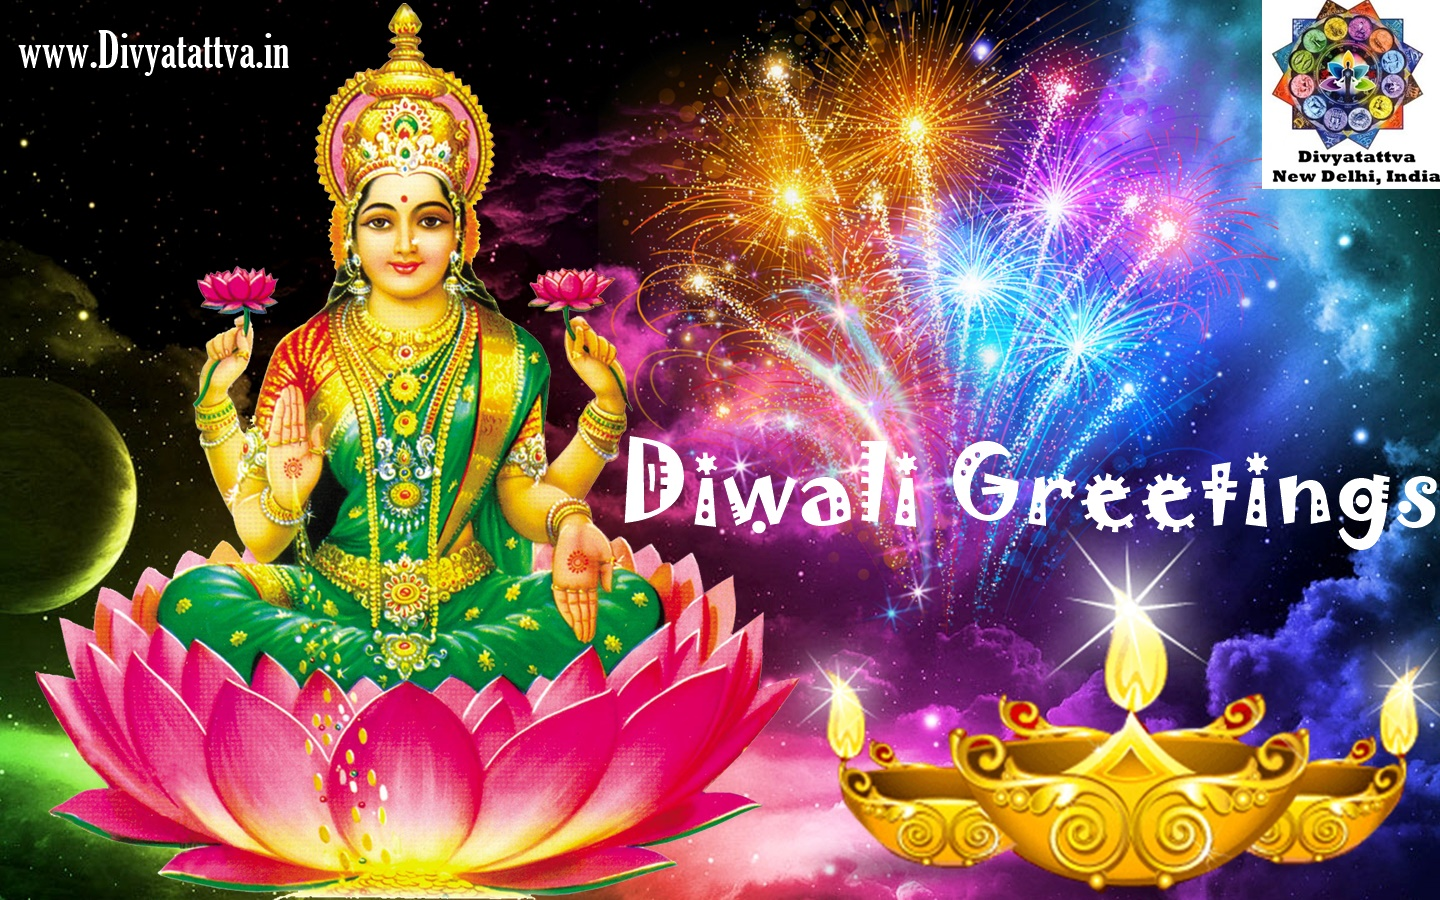 Divyatattva astrology free horoscopes psychic tarot yoga tantra happy diwali greetings lord rama krishna hd wallpaper free download m4hsunfo